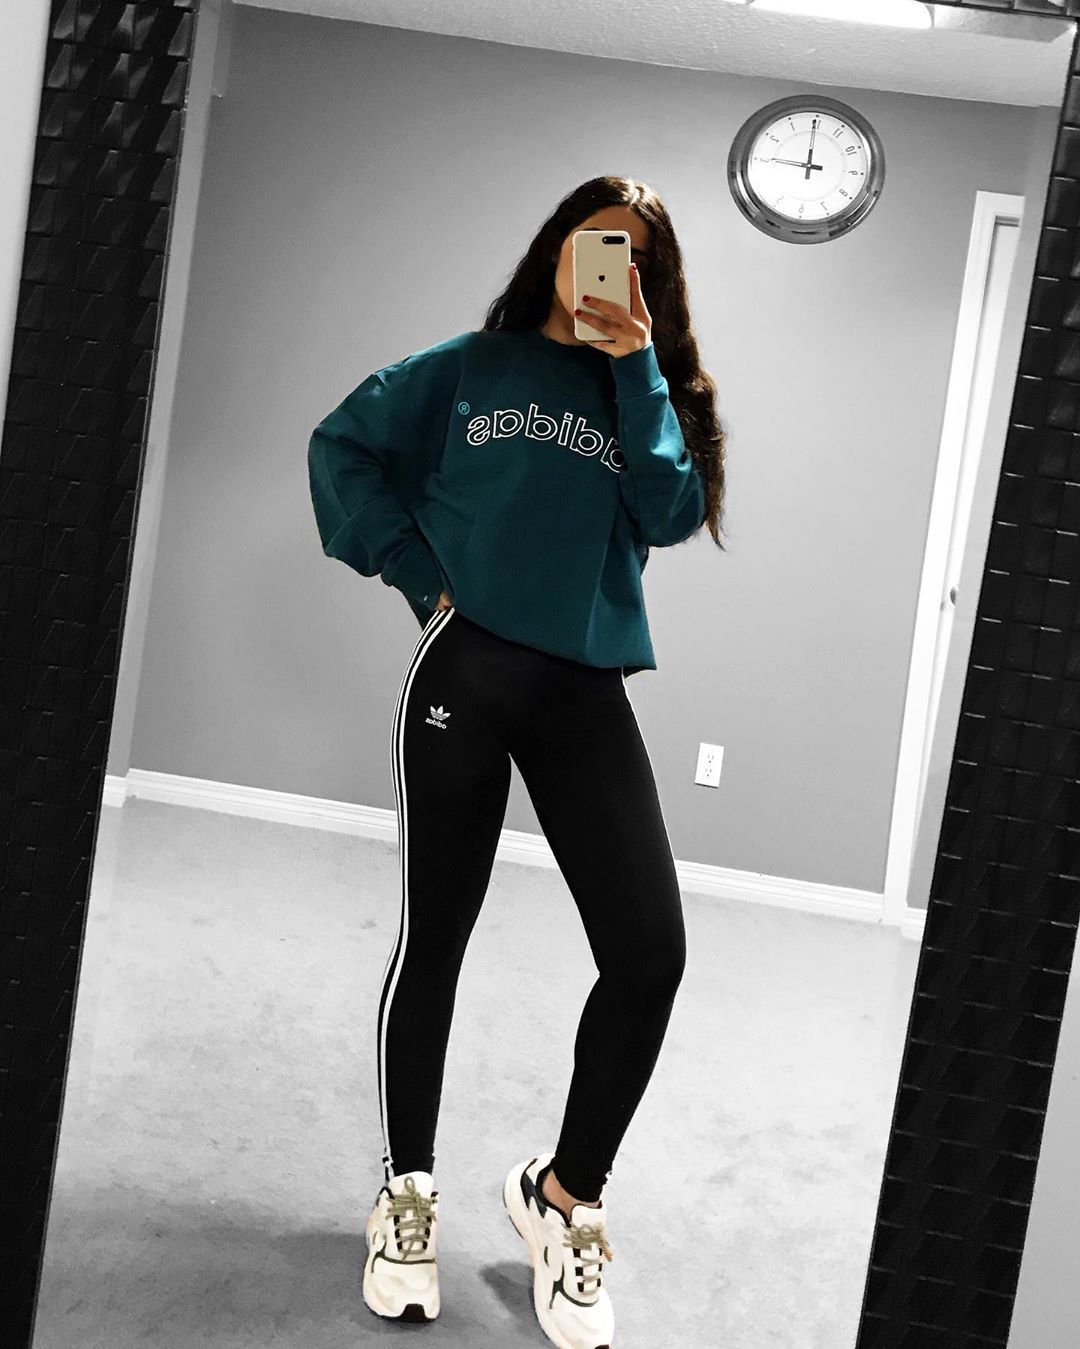 Pin By Phoebe N On Inspo In 2020 Adidas Leggings Outfit Outfits With Leggings Cute Casual Outfits